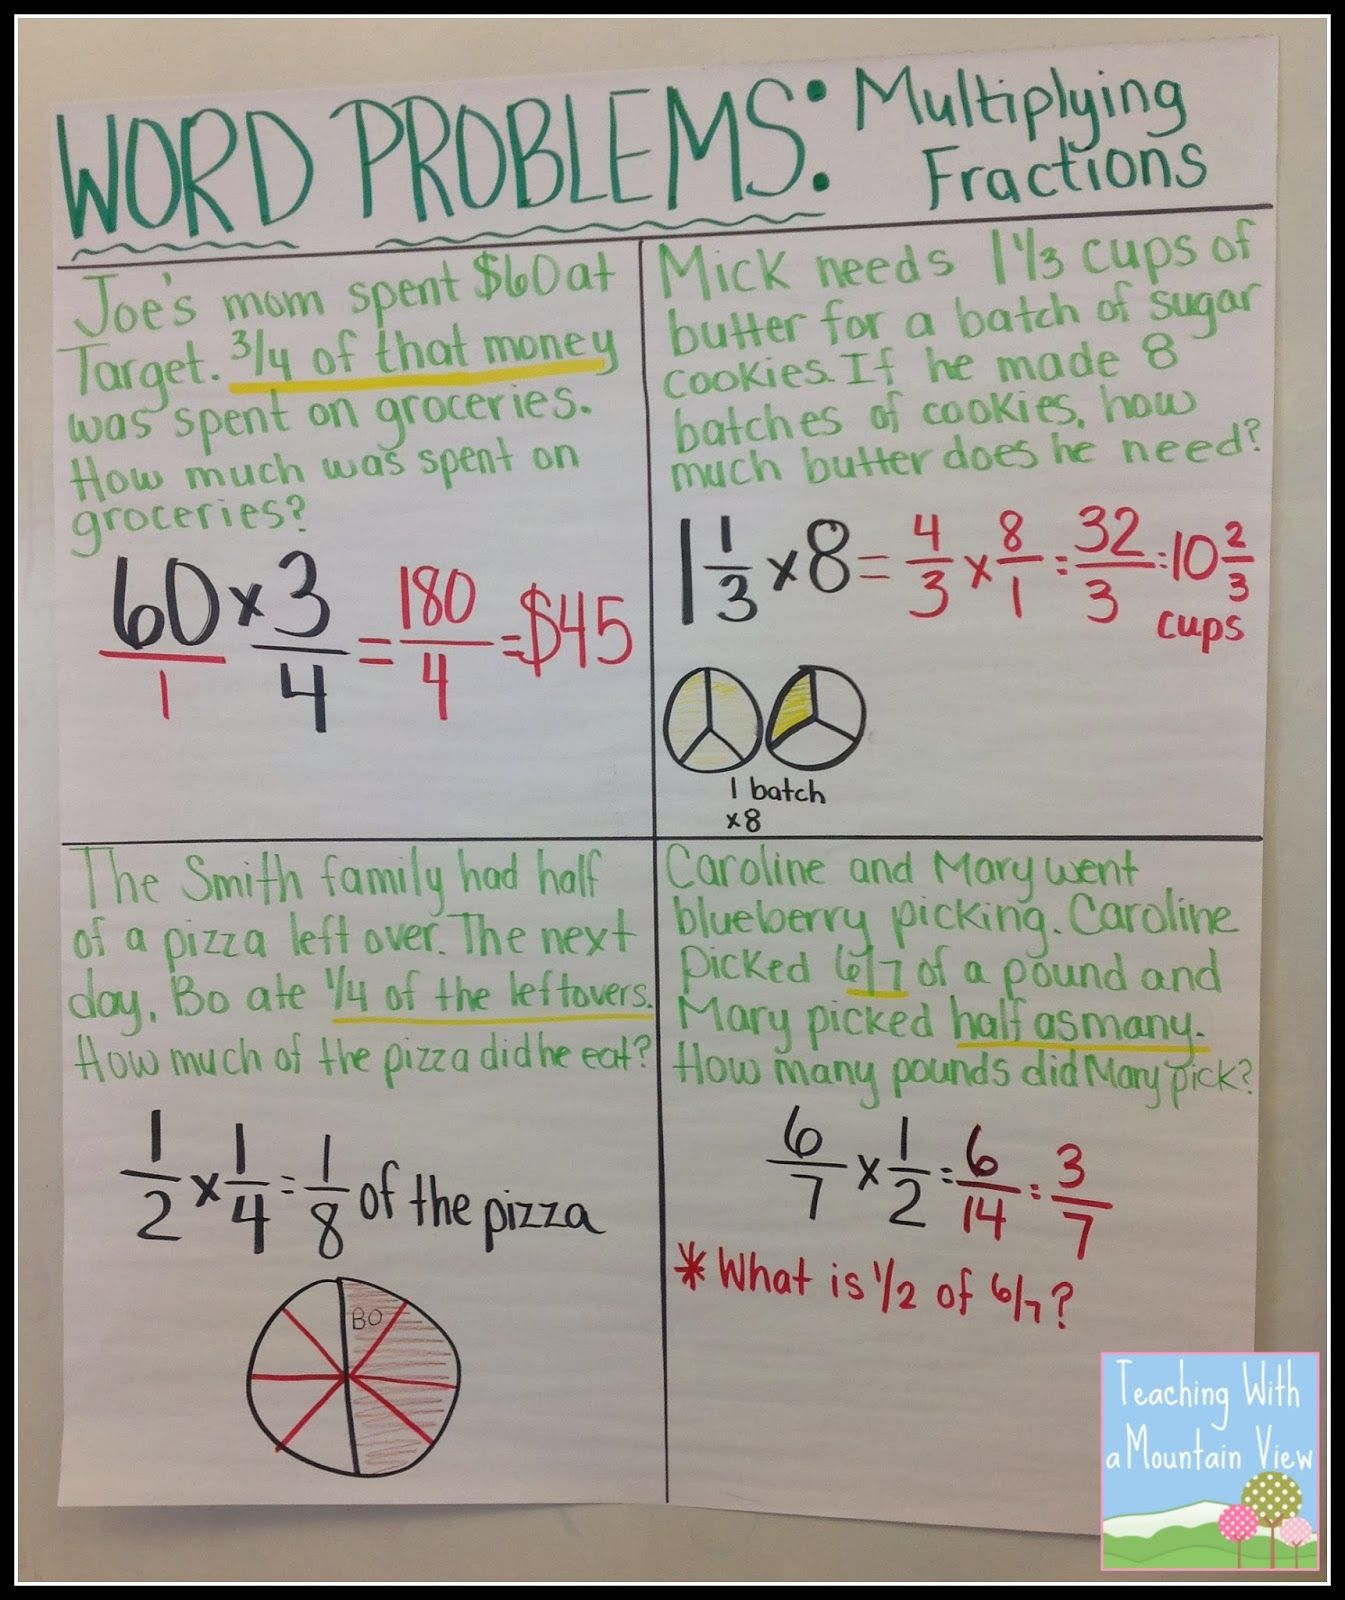 Worksheet Multiplication Fraction Word Problems Worksheets 1000 images about multiplying fractions on pinterest word problems and dividing fractions